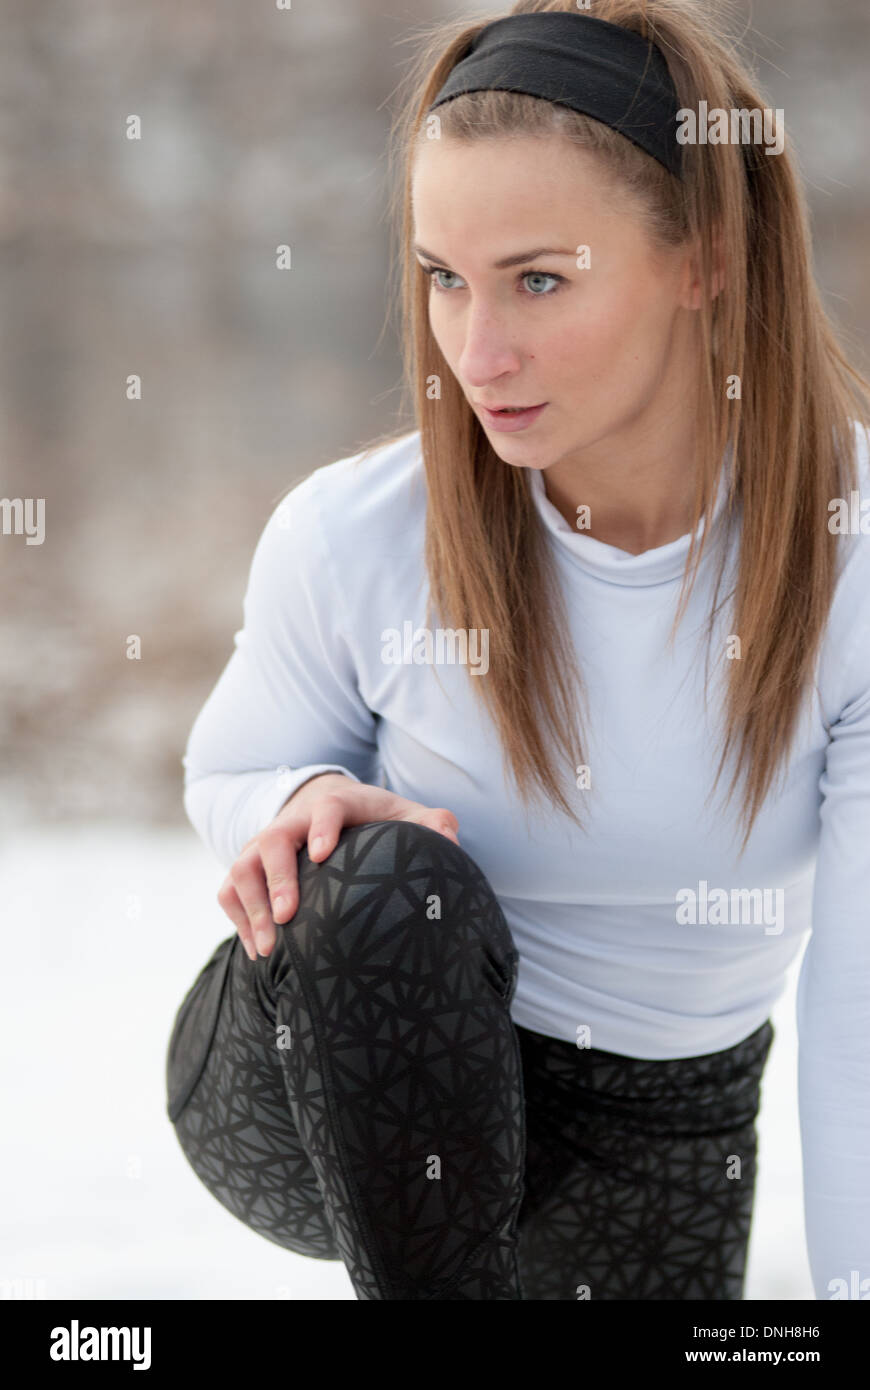 A beautiful young woman stretches before a run on a cold winter day. - Stock Image